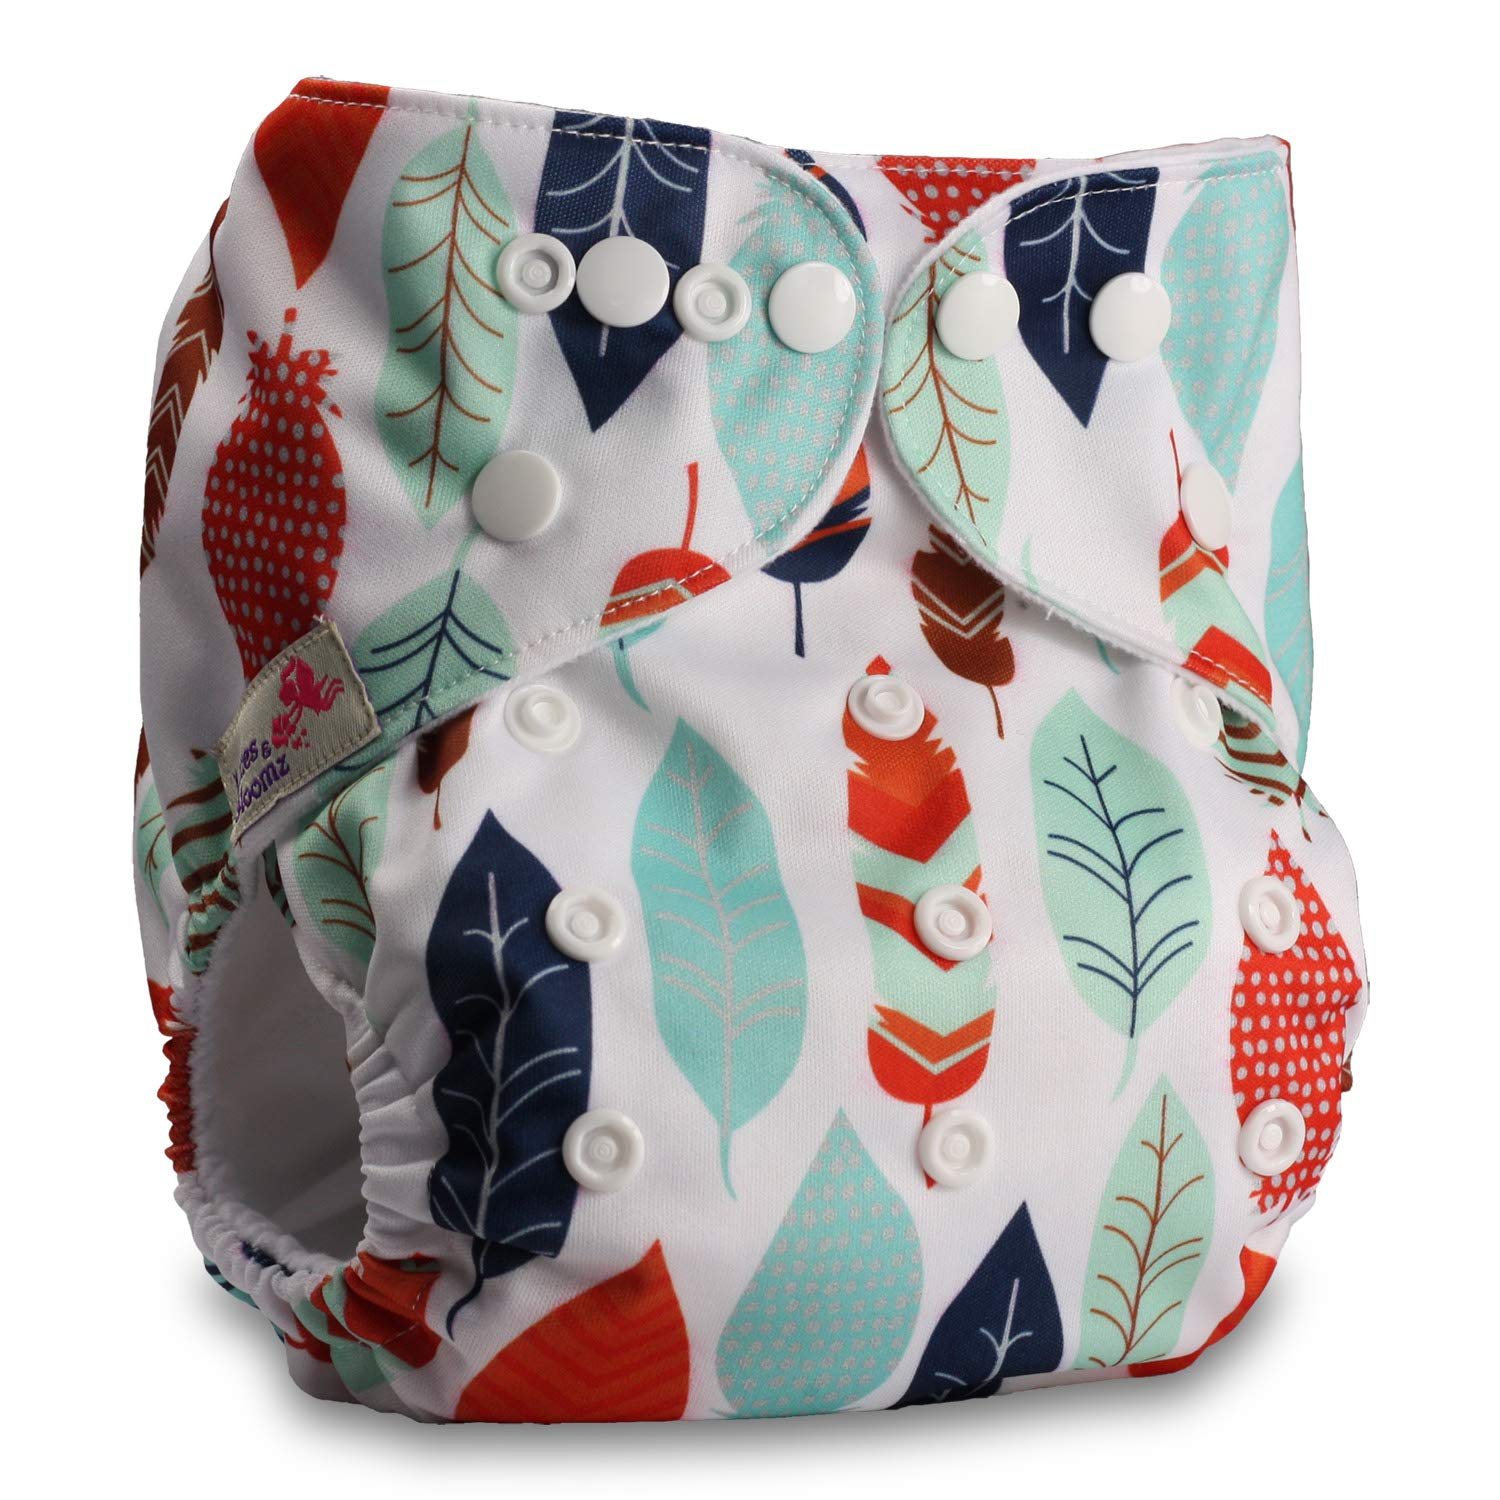 Fastener: Popper Littles /& Bloomz Set of 1 Reusable Pocket Cloth Nappy with 1 Microfibre Insert Pattern 32